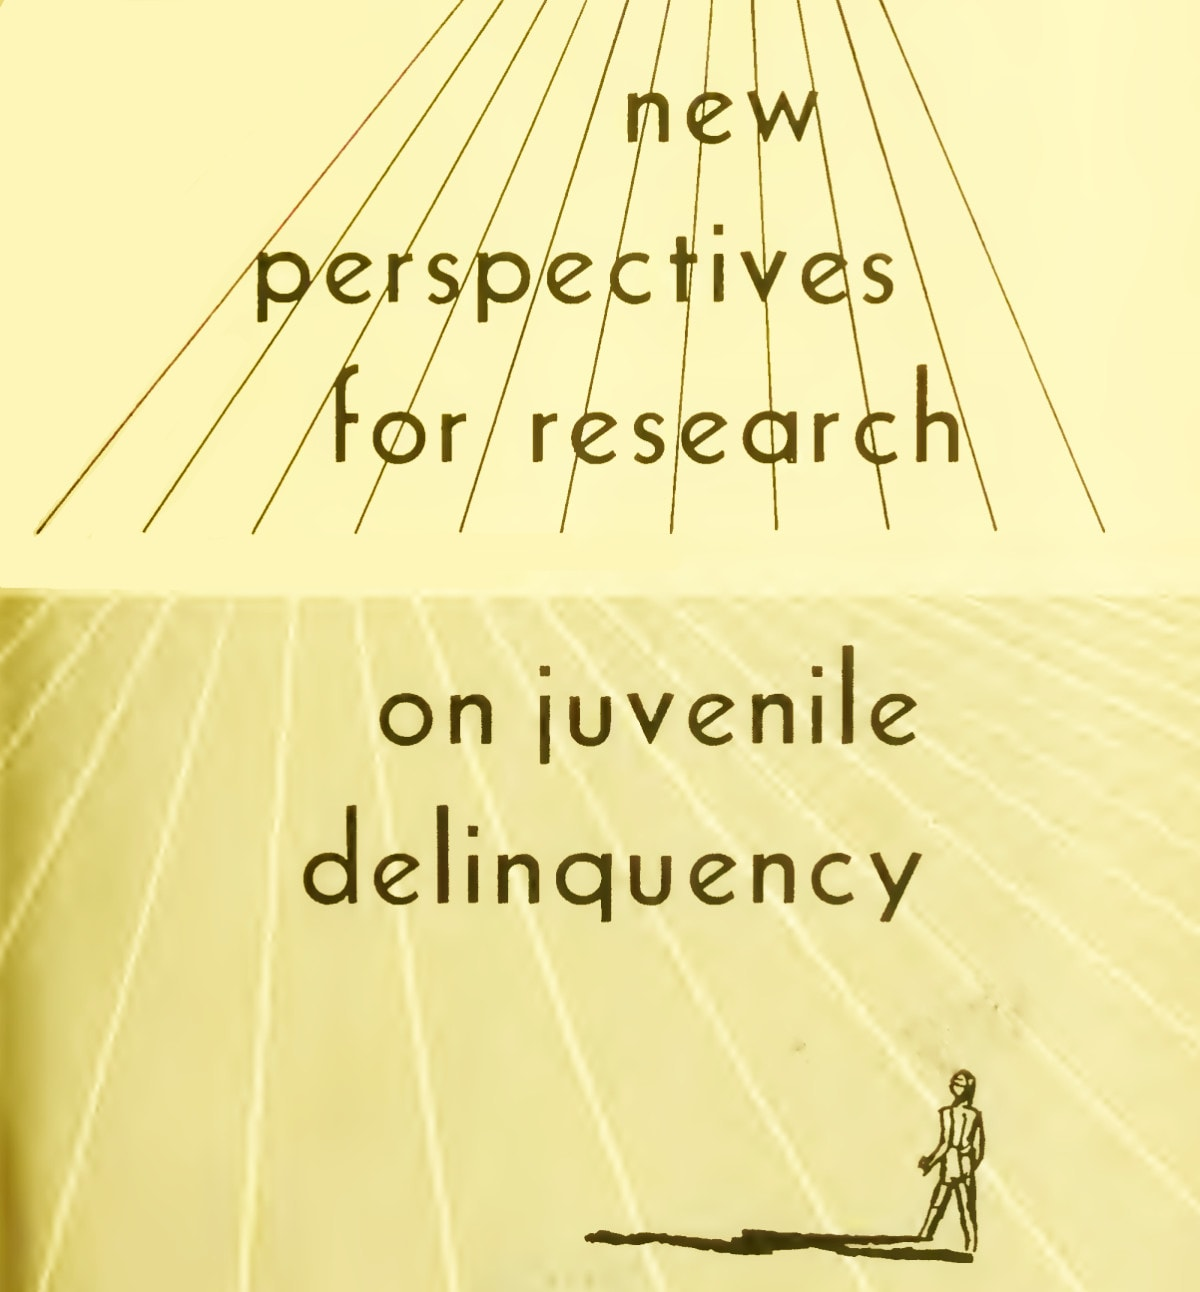 New perspectives on juvenile delinquency